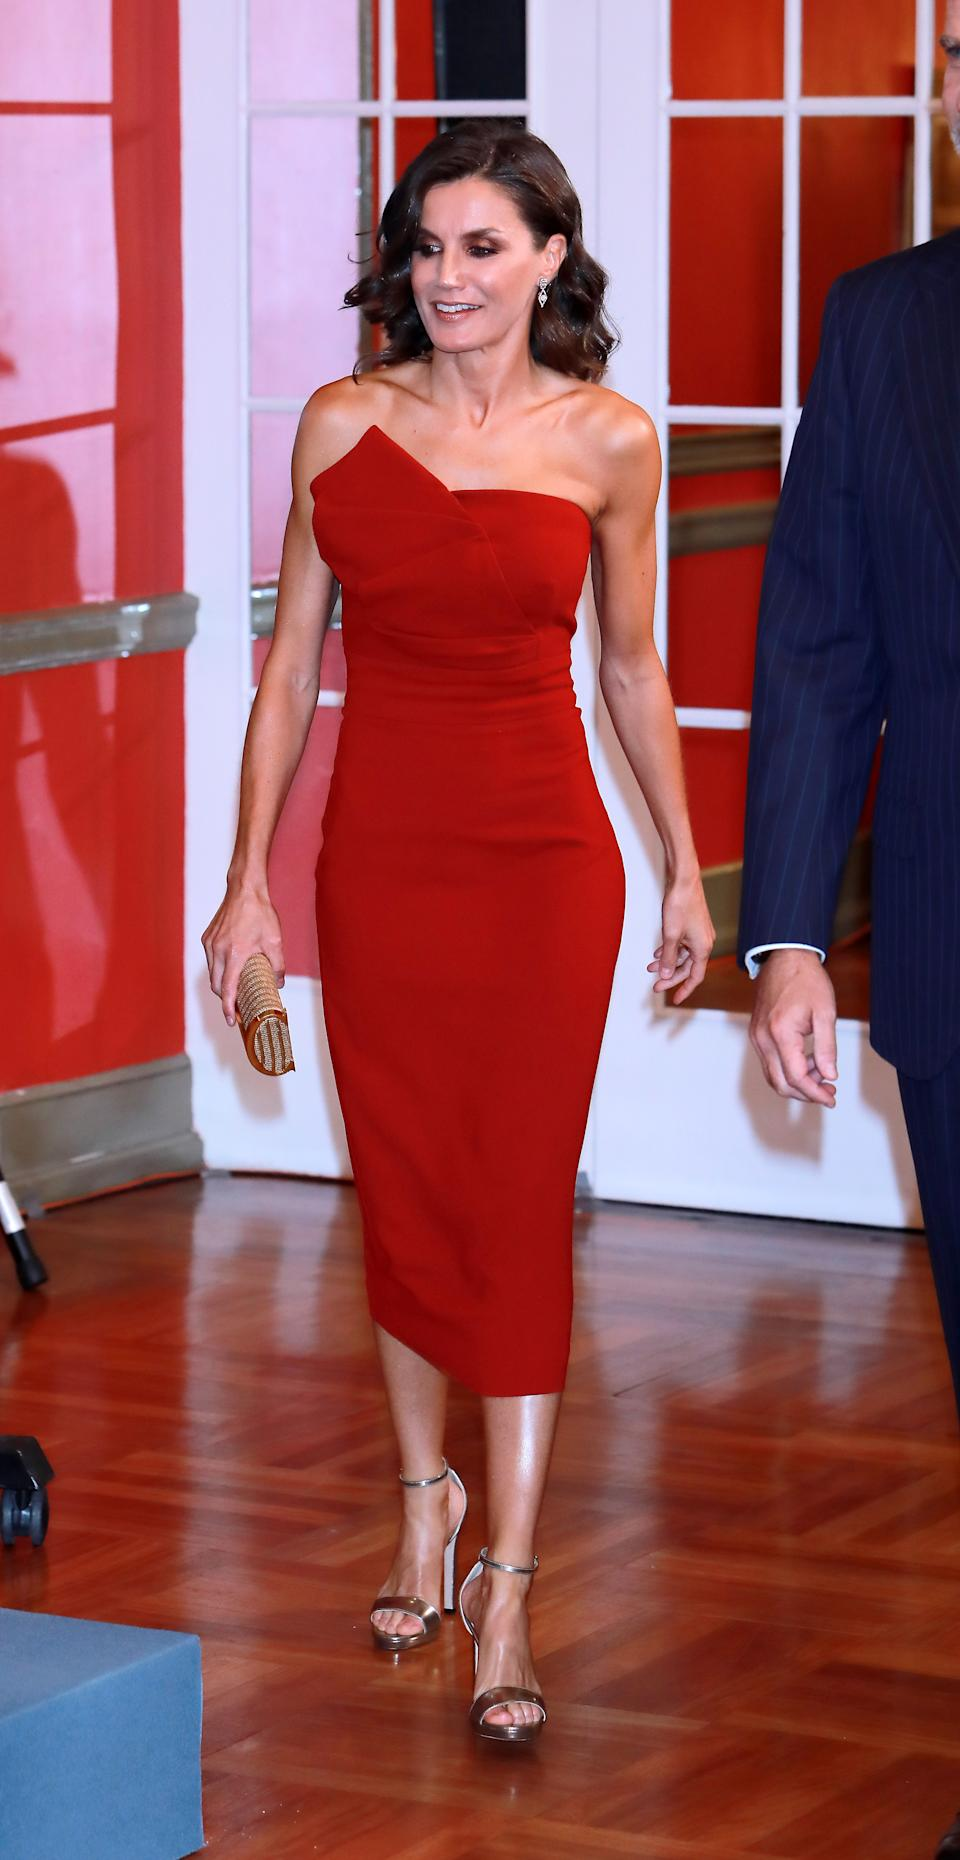 MADRID, SPAIN - OCTOBER 01: Queen Letizia of Spain attends the 30th anniversary of 'El Mundo' Newspaper at Hotel Westin Palace on October 01, 2019 in Madrid, Spain. (Photo by Europa Press Entertainment/Europa Press via Getty Images)